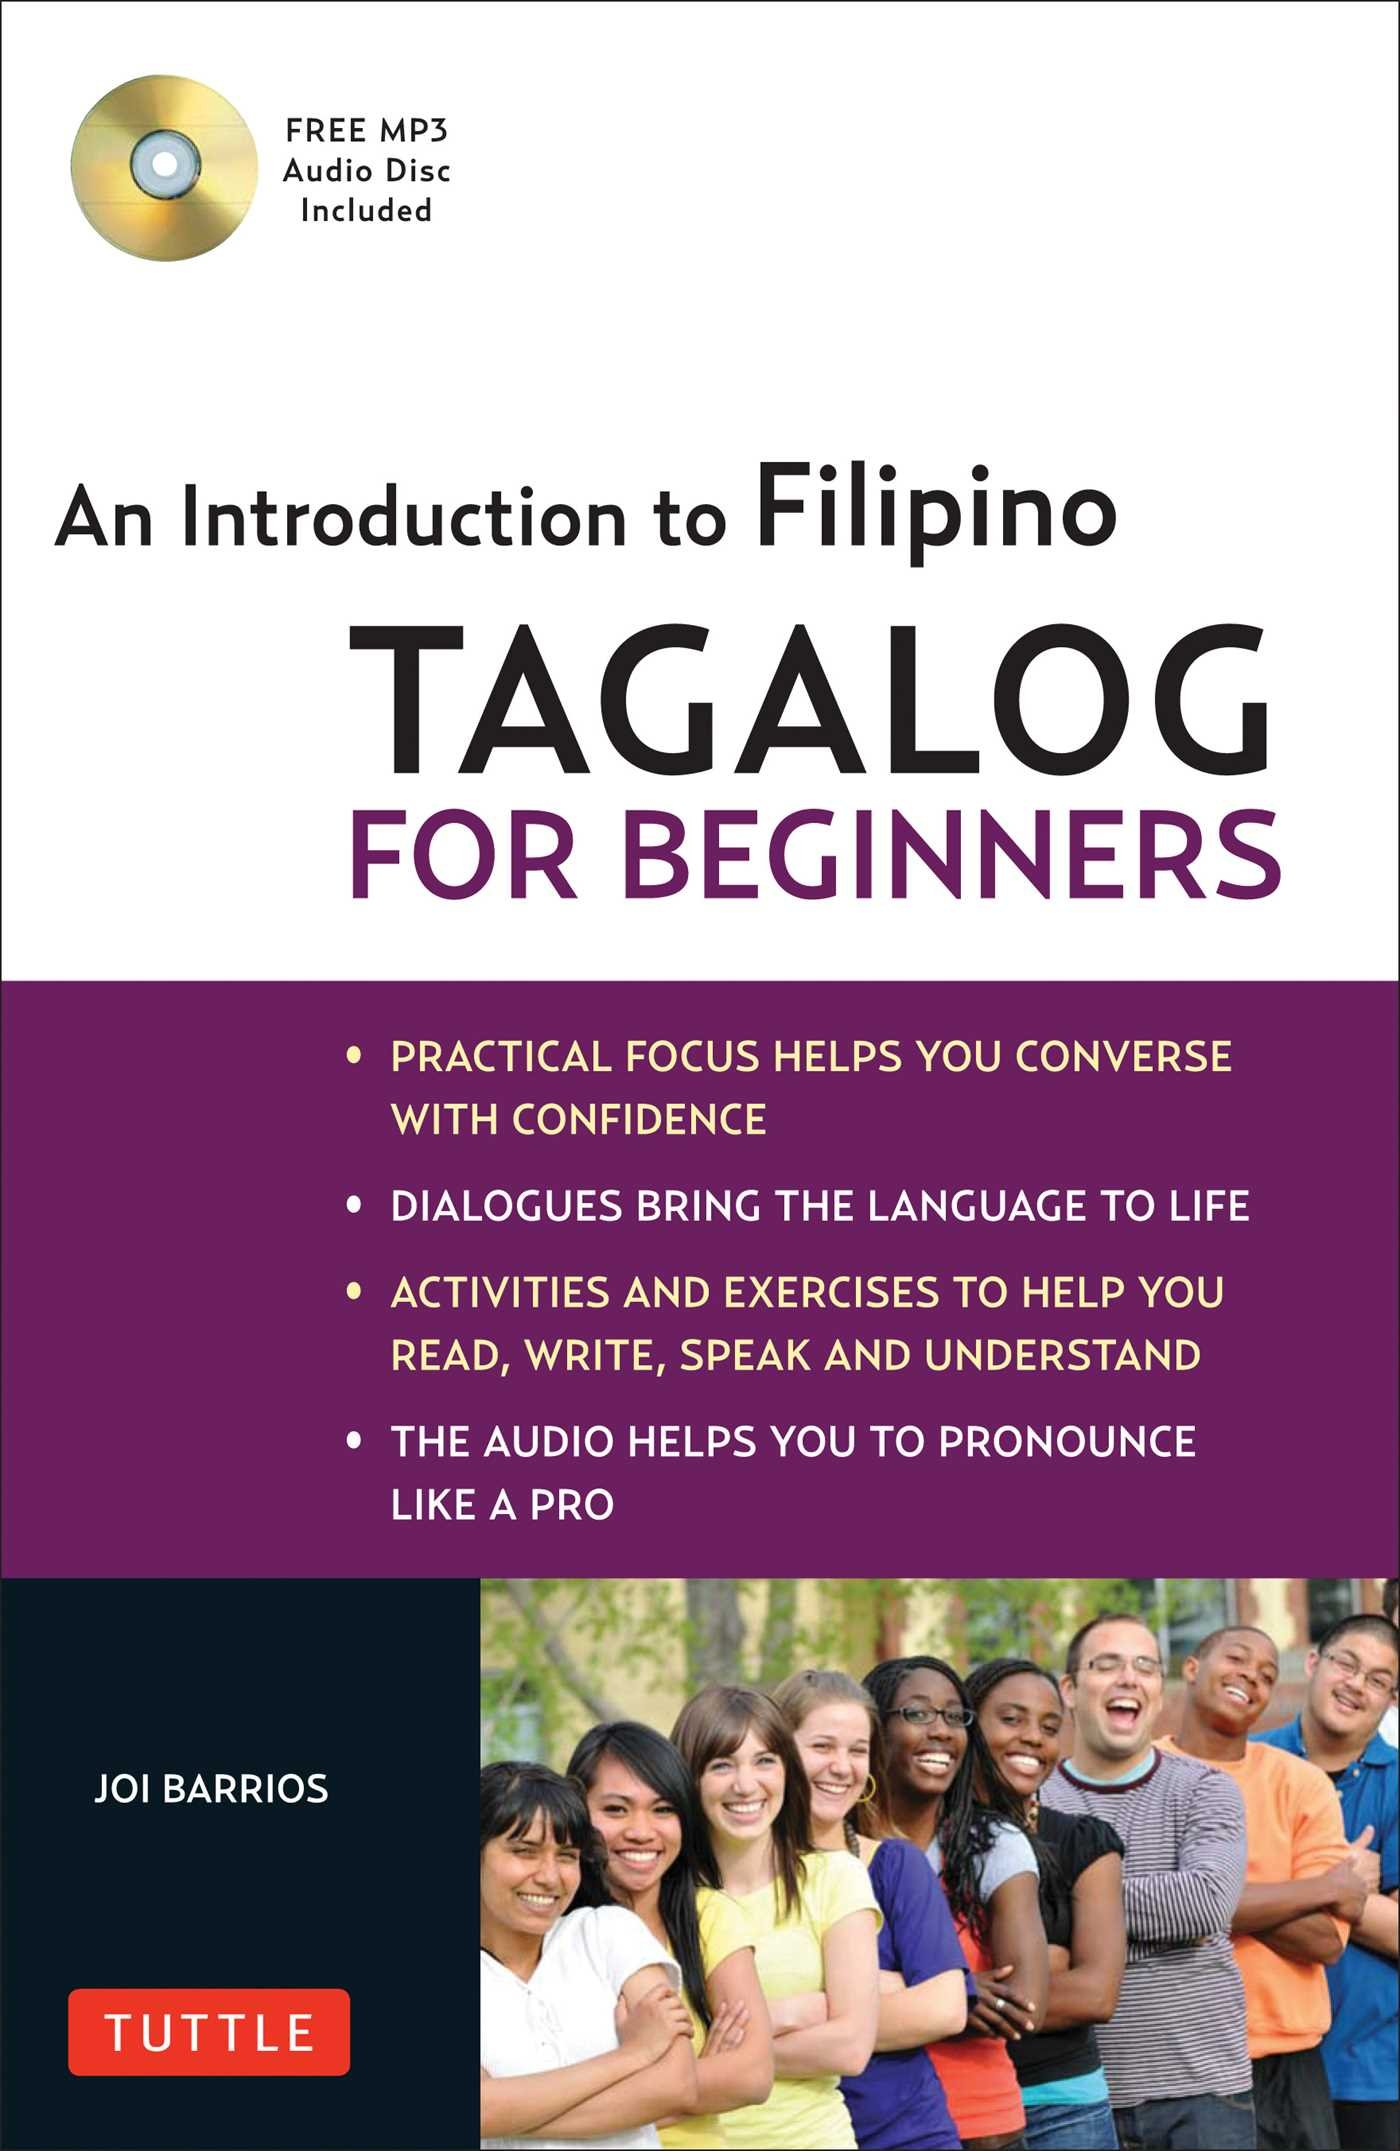 Learning Tagalog Filipino for Children DVD Set Tagalog Flashcards 150 Cards Movie HD free download 720p